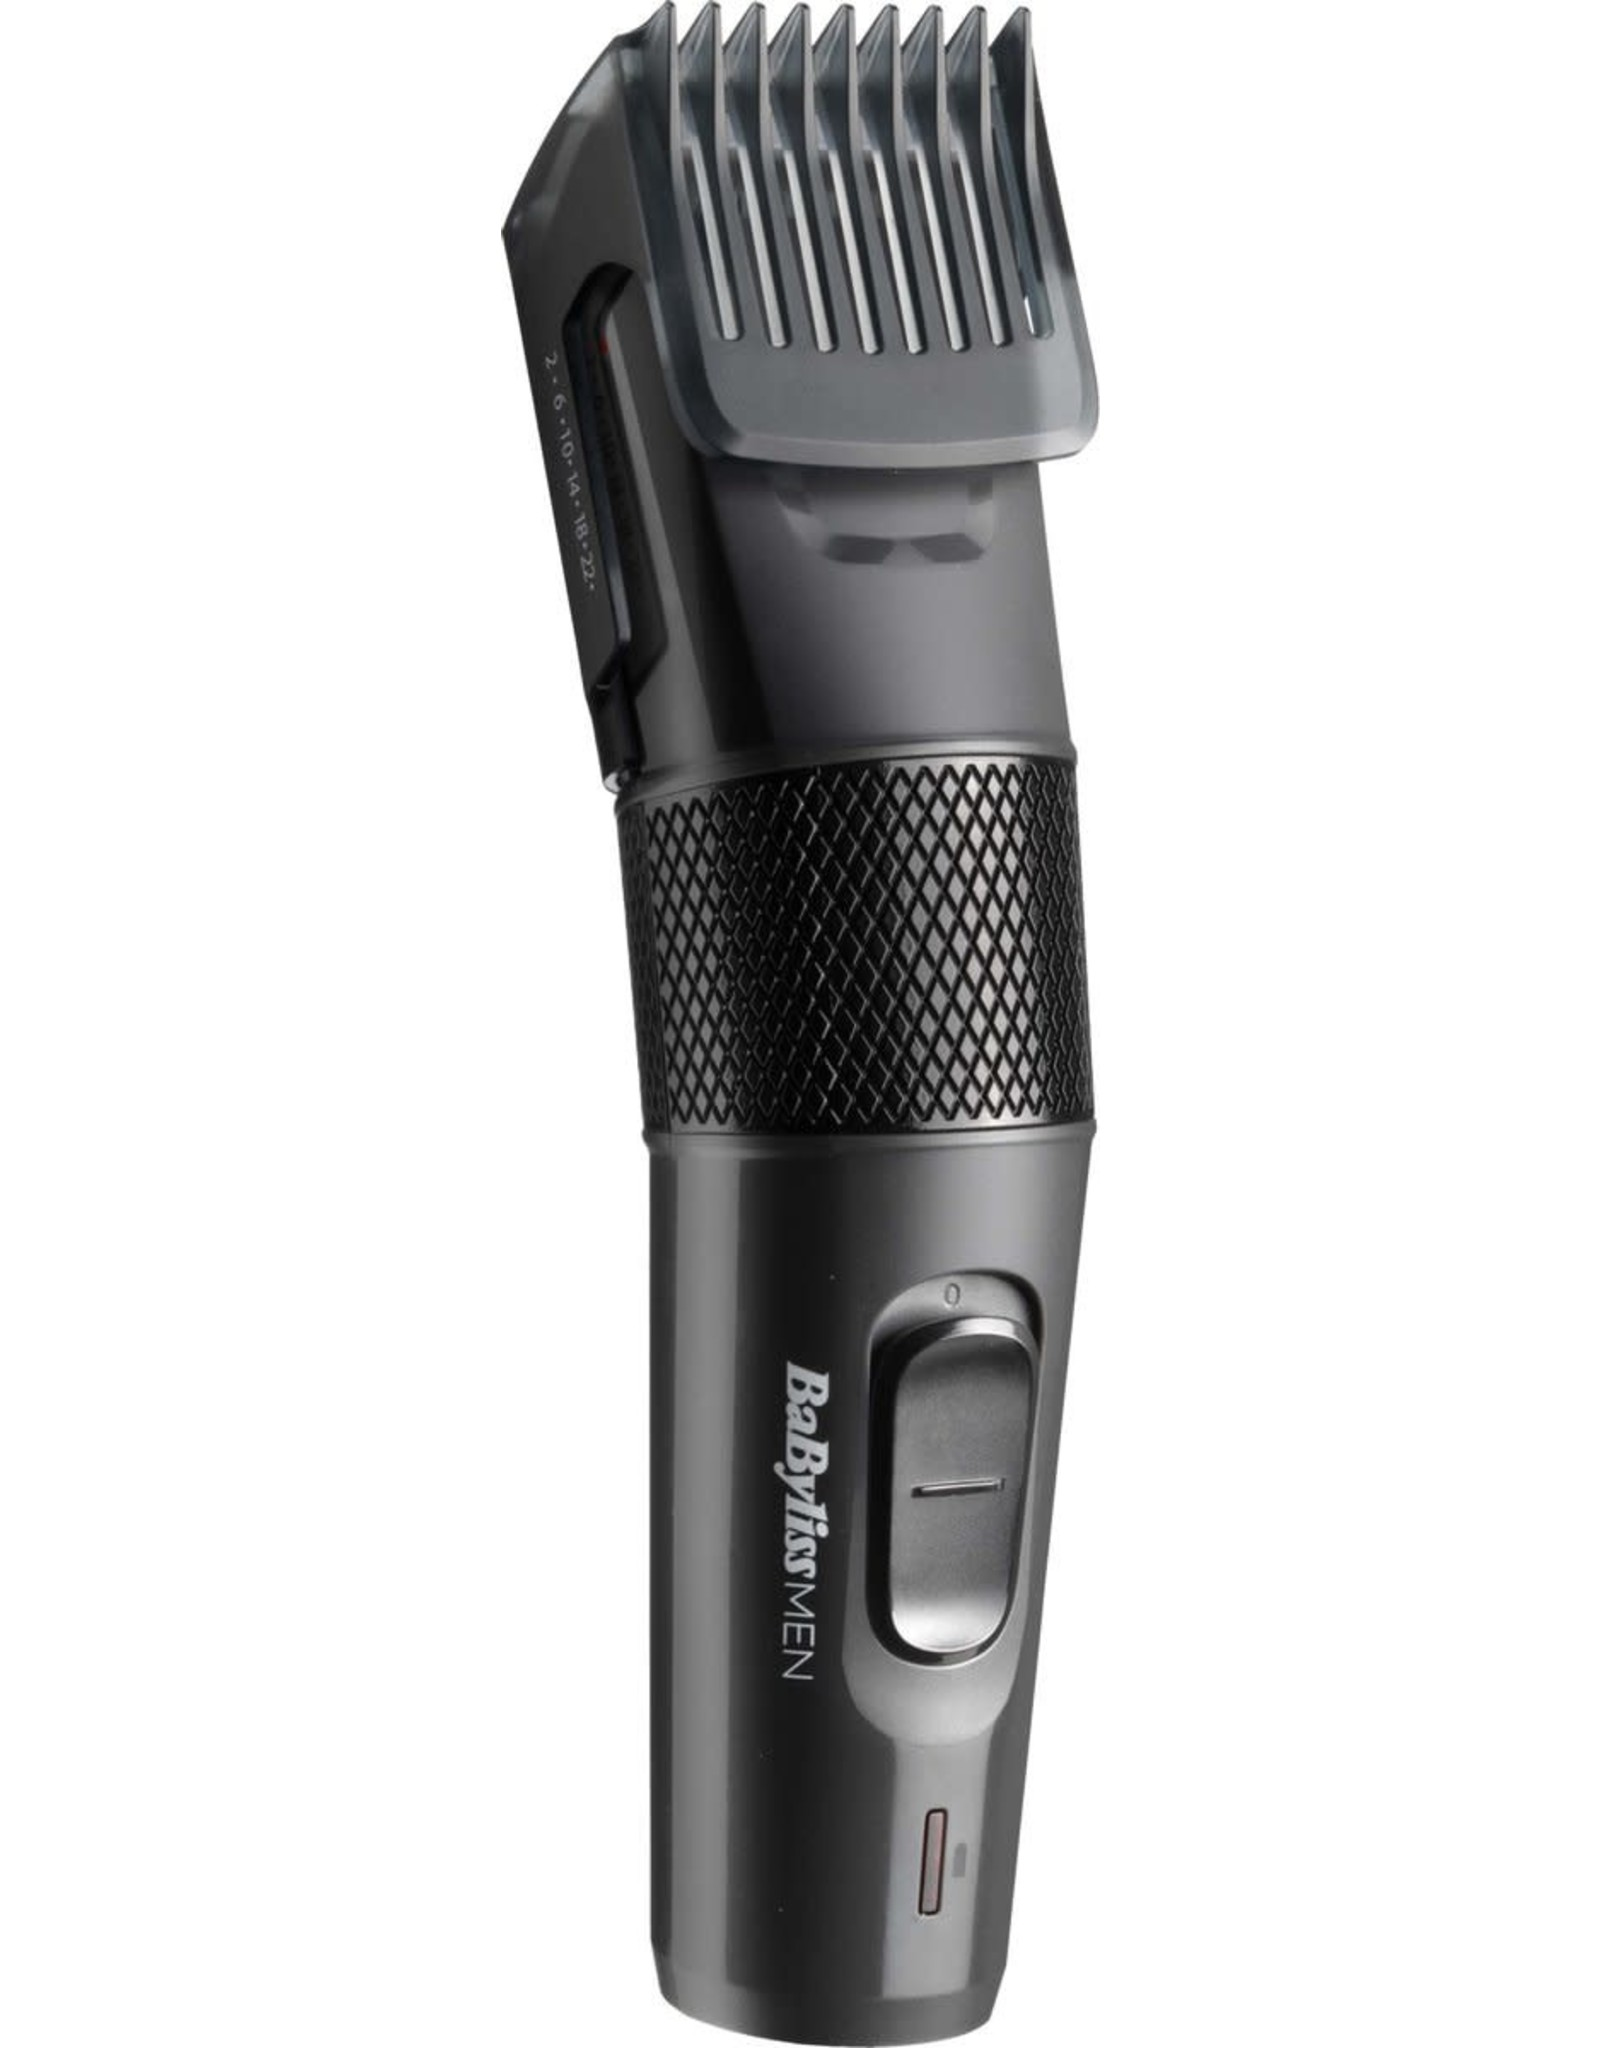 Babyliss BaByliss tondeuse Precision